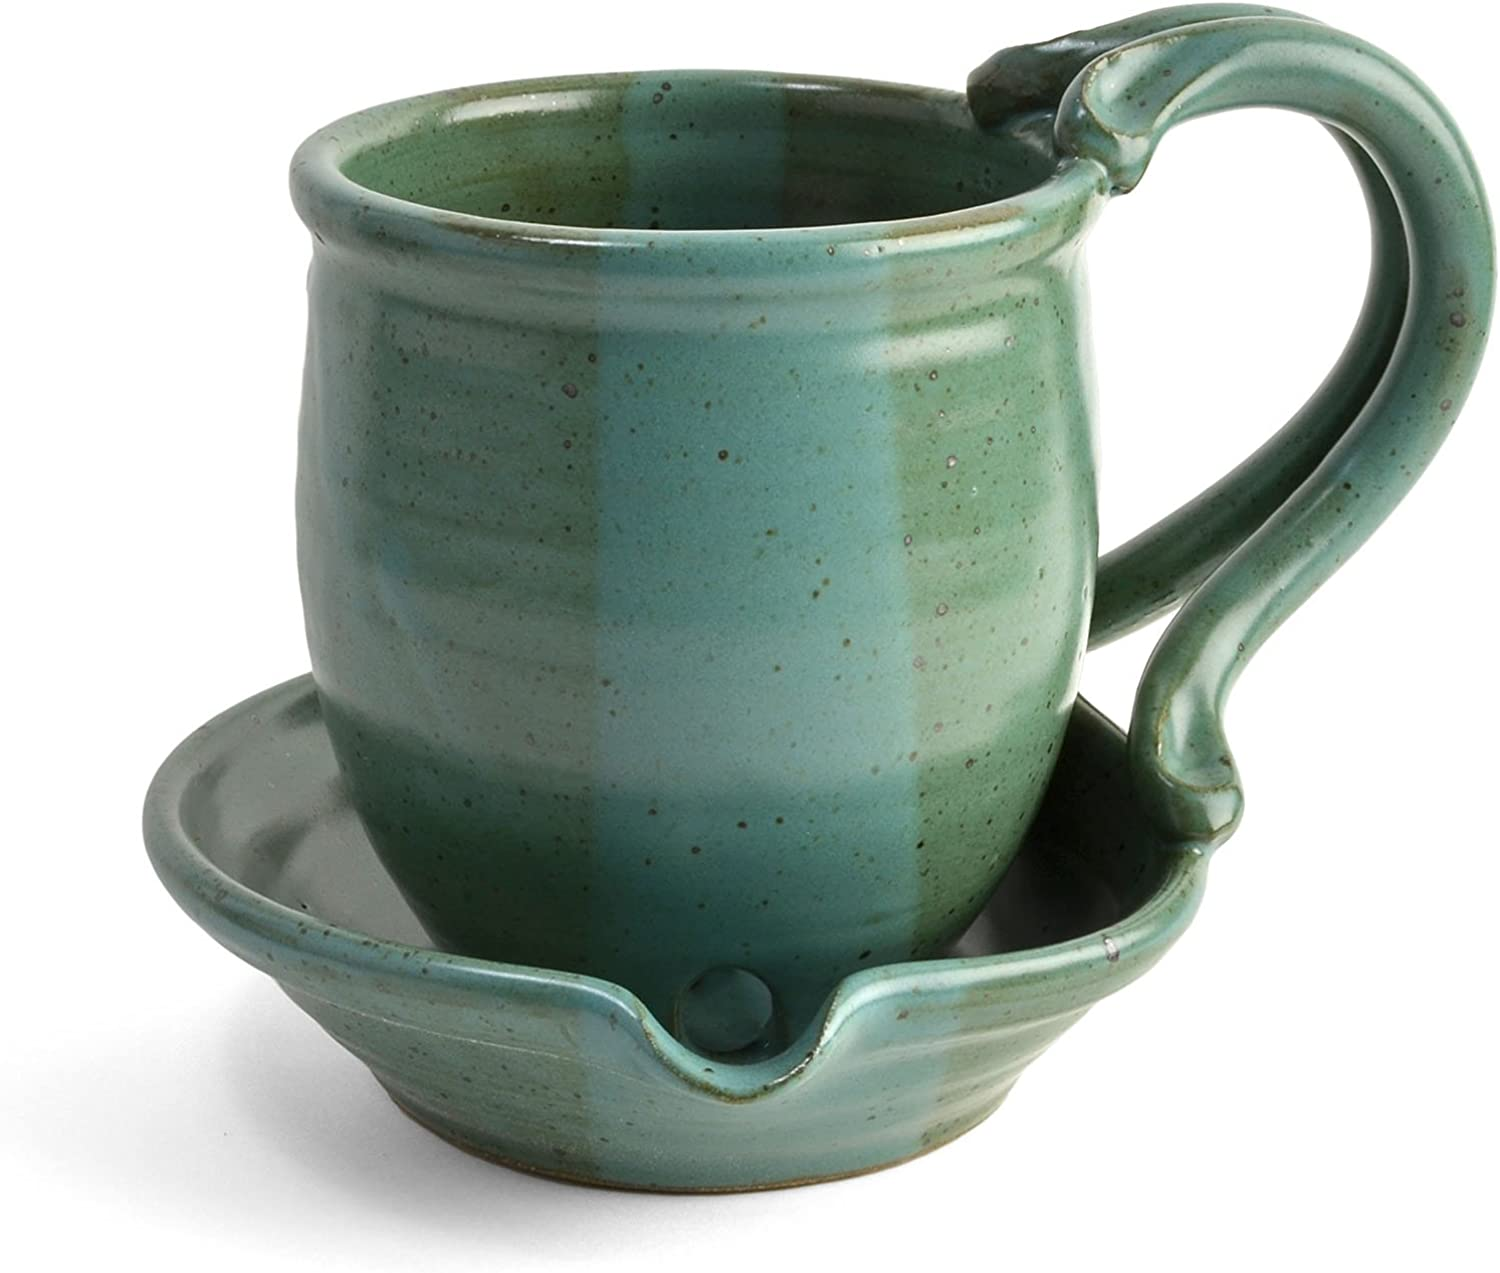 Anthony Stoneware Microwave Bacon Cooker, Teal Green